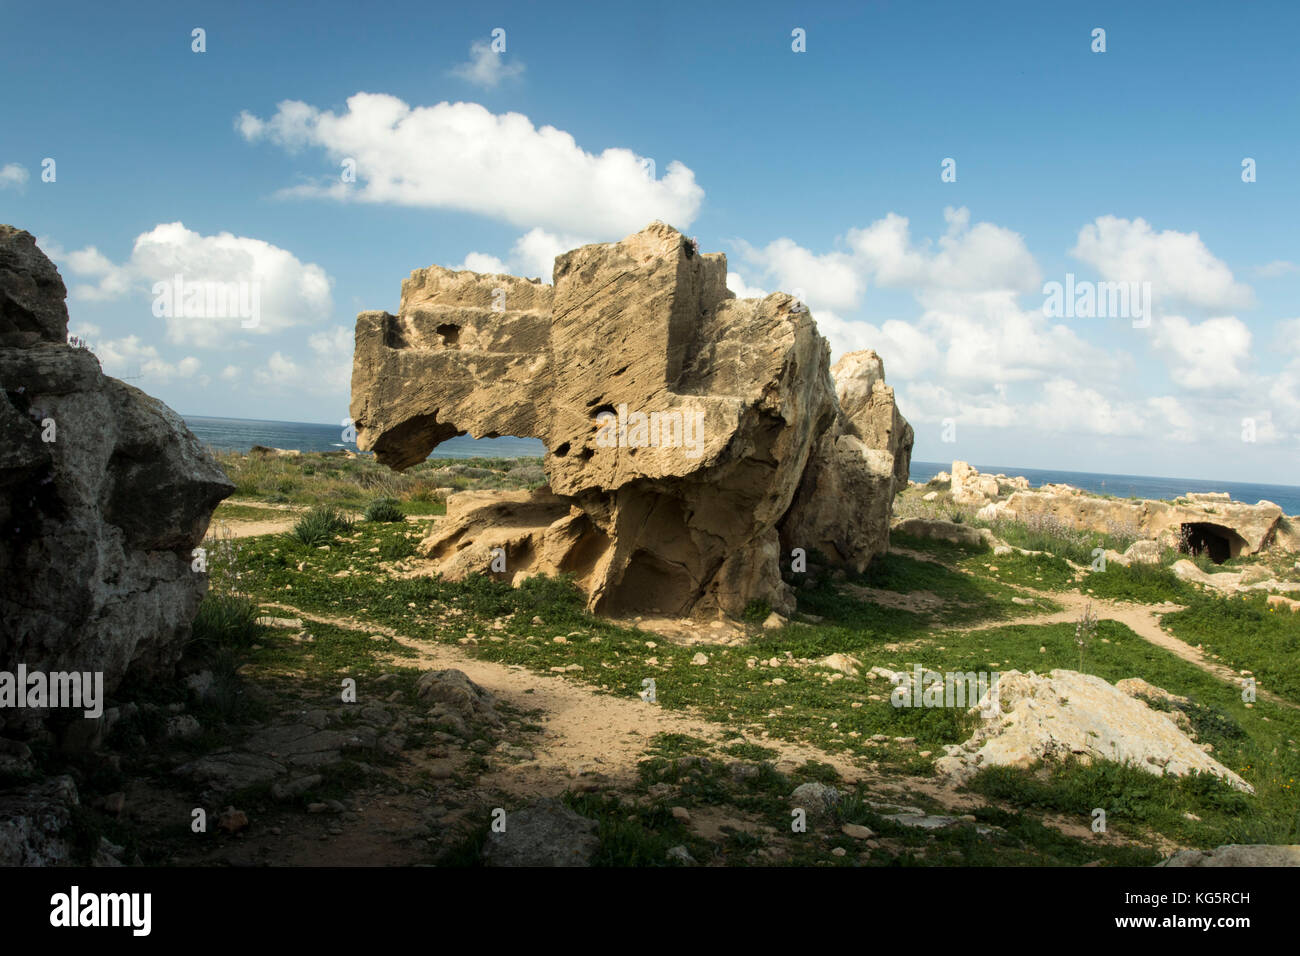 Rock outcrop, valley of the kings, Paphos - Stock Image